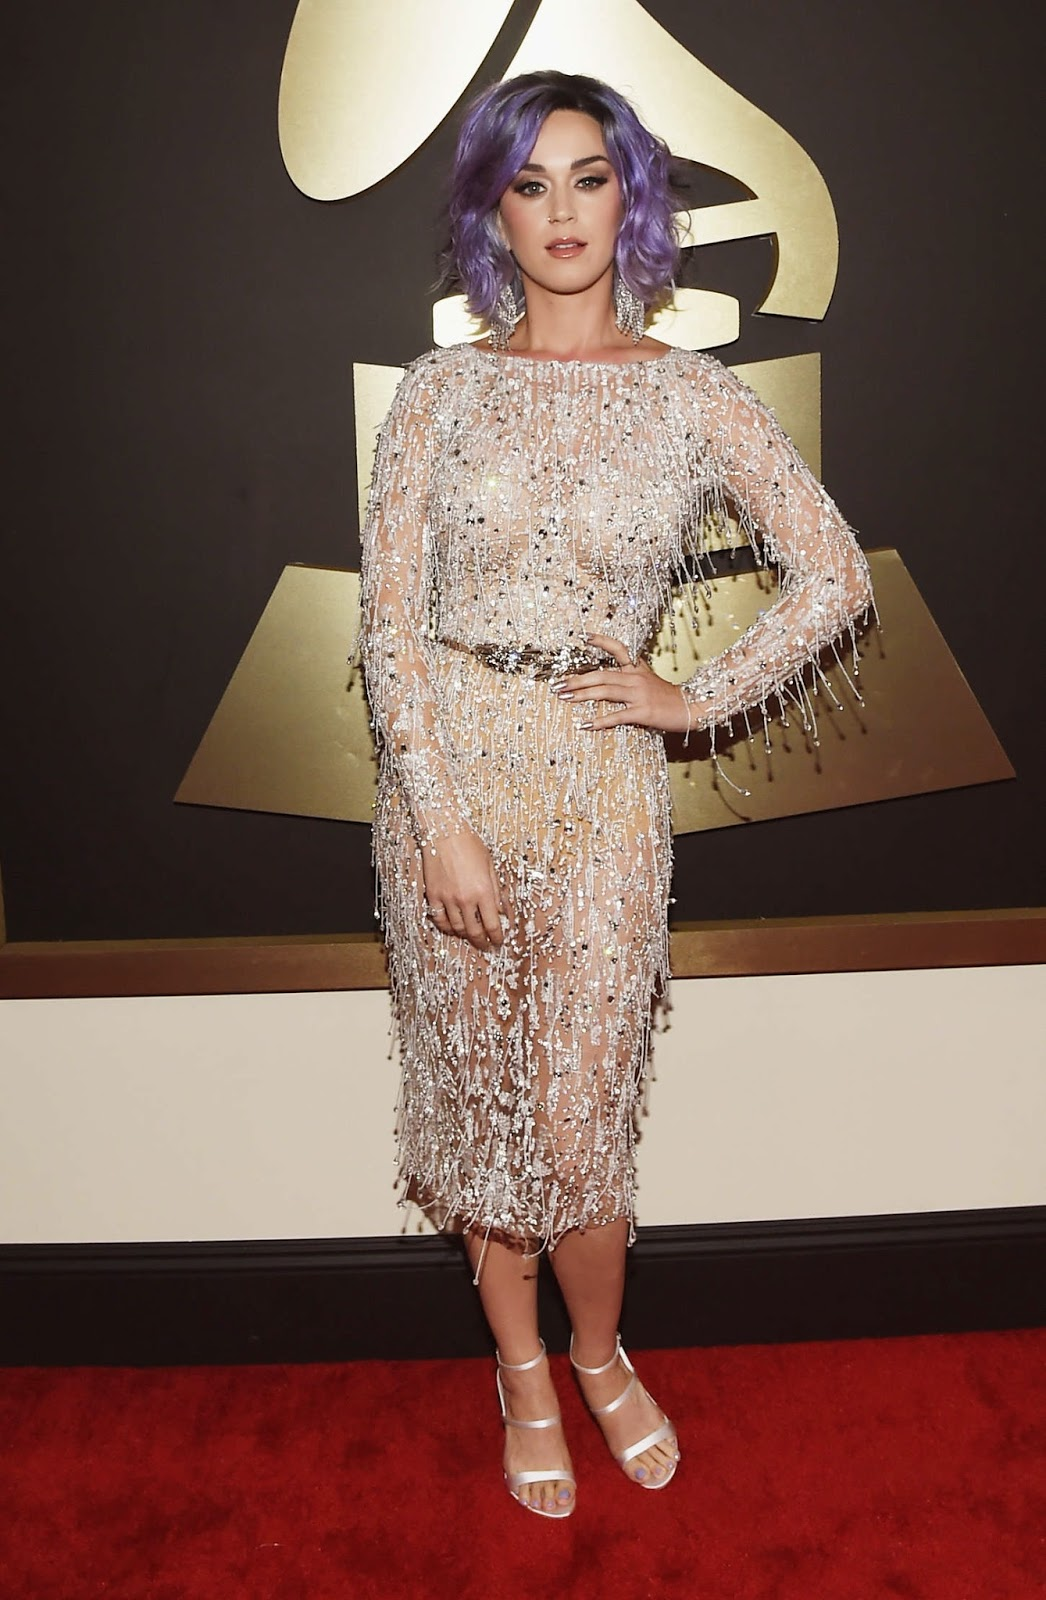 Katy Perry Shimmers In A Zuhair Murad Couture Dress At The